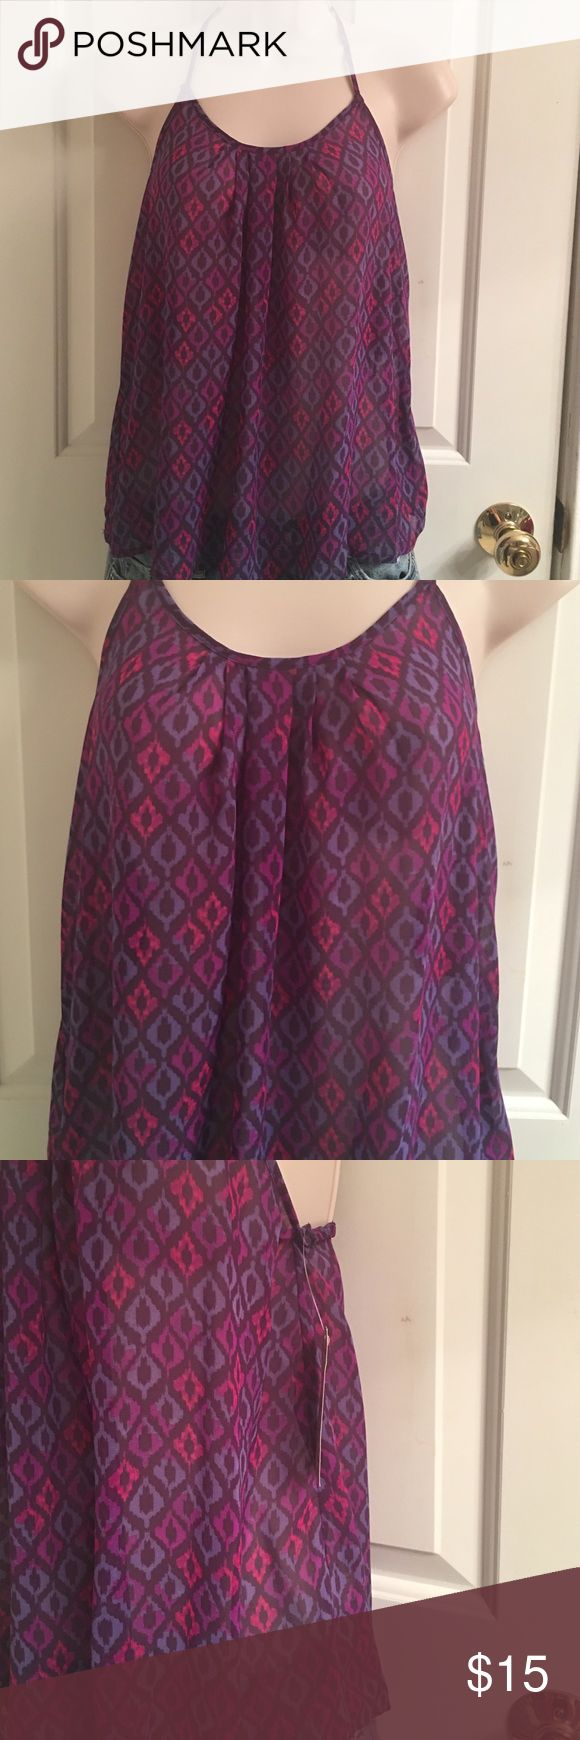 NWT- Arizona Purple Loose Fitting Racerback Tank NWT- Junior women's Arizona purple loose fitting tank top. Lightweight. Spaghetti strap. Crochet racerback, with elastic around the back. Size small. Excellent condition. 100% Polyester Arizona Jean Company Tops Tank Tops